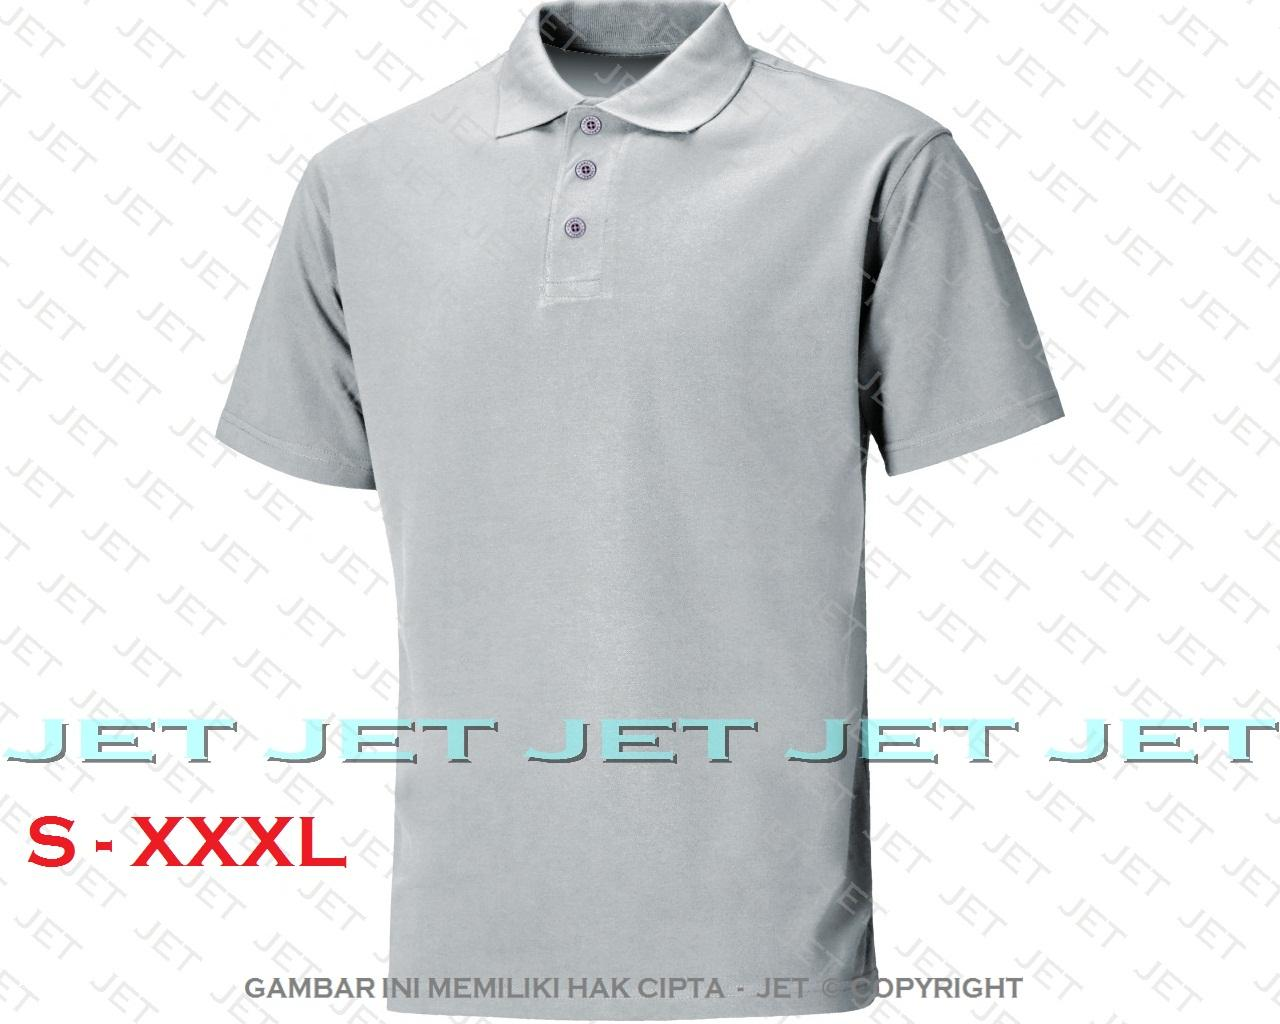 POLO JET - S M L XL XXL XXXL 2L 3L 22 WARNA Polo Shirt Kaos Distro T